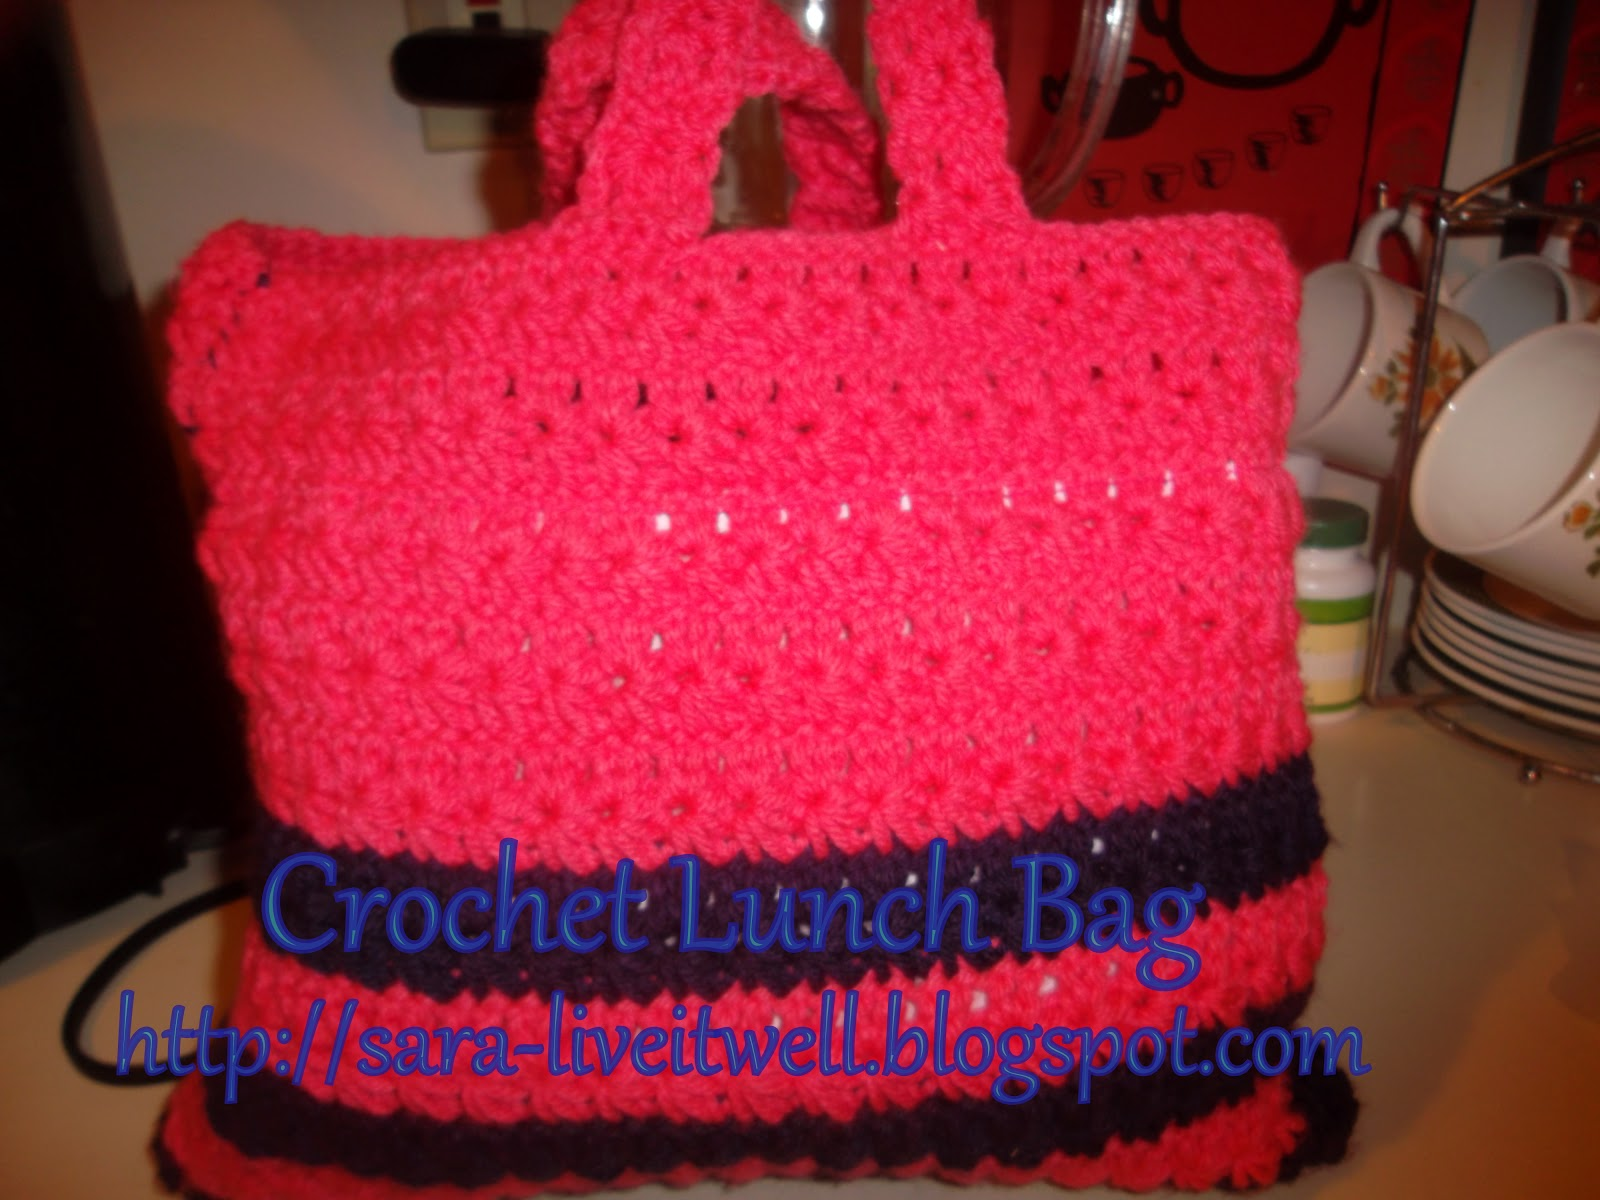 Live it well: Crochet Lunch Bag